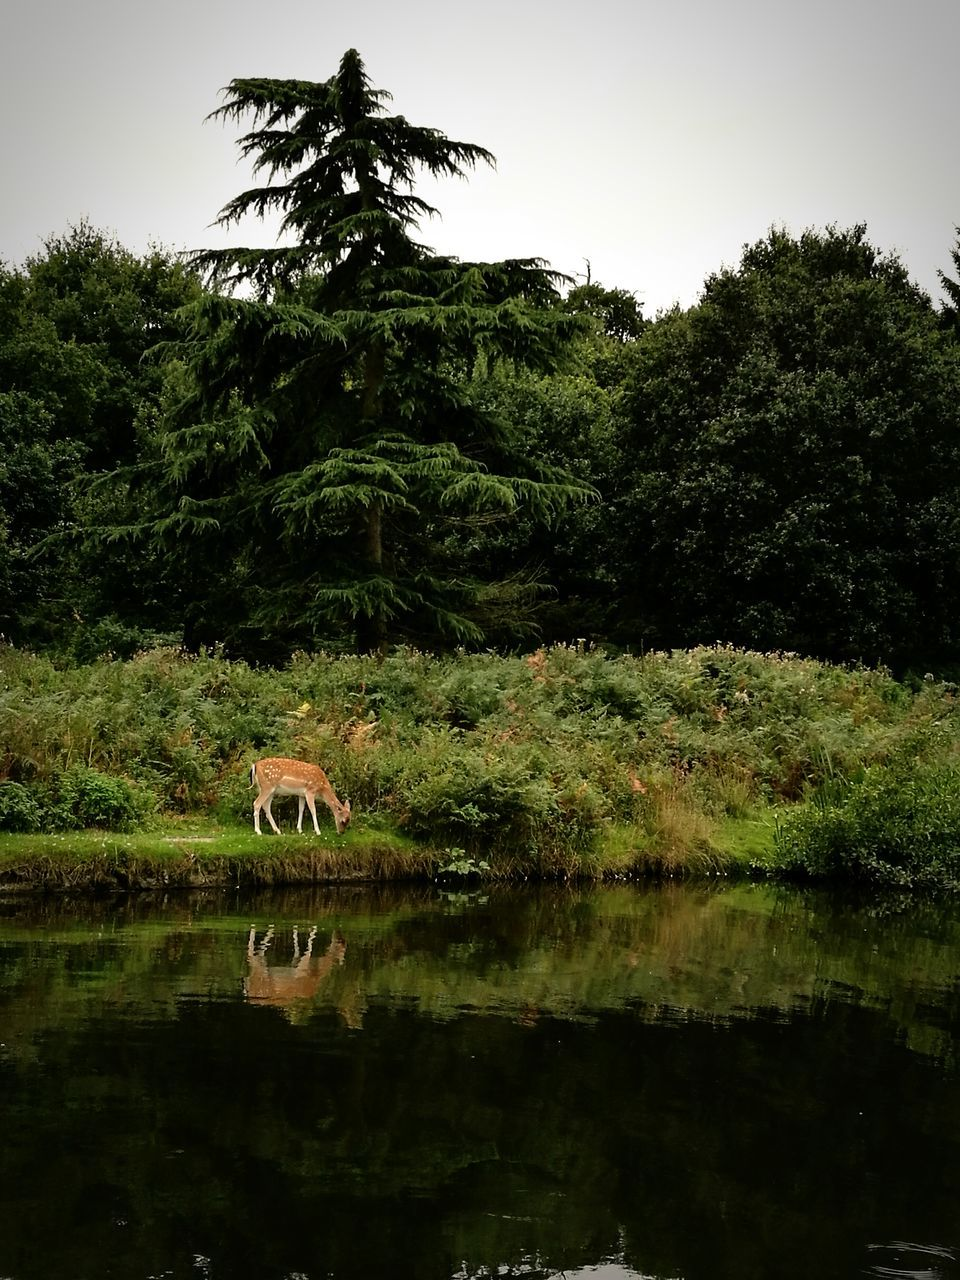 tree, nature, reflection, growth, animal themes, water, day, no people, outdoors, lake, one animal, plant, animals in the wild, beauty in nature, mammal, bird, sky